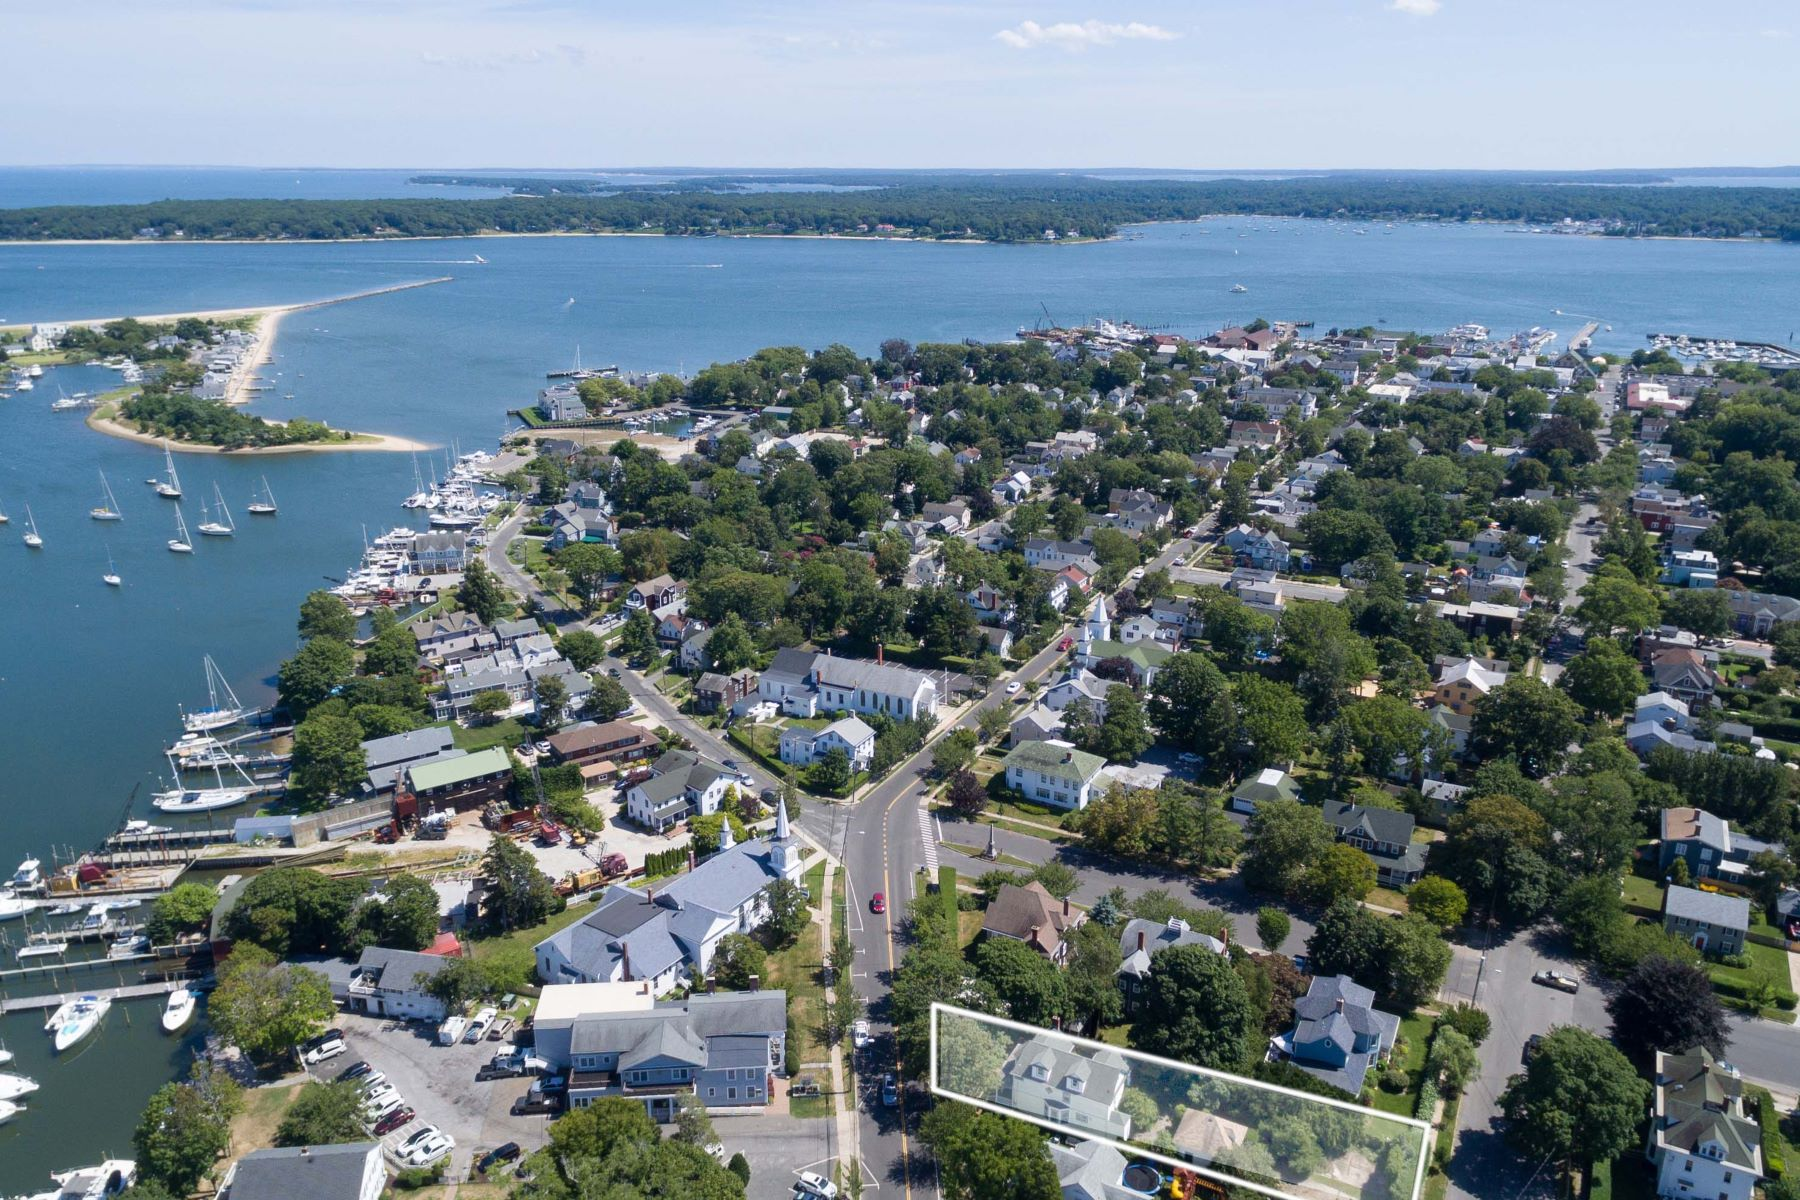 Single Family Homes for Active at Greenport 711 Main St Greenport, New York 11944 United States